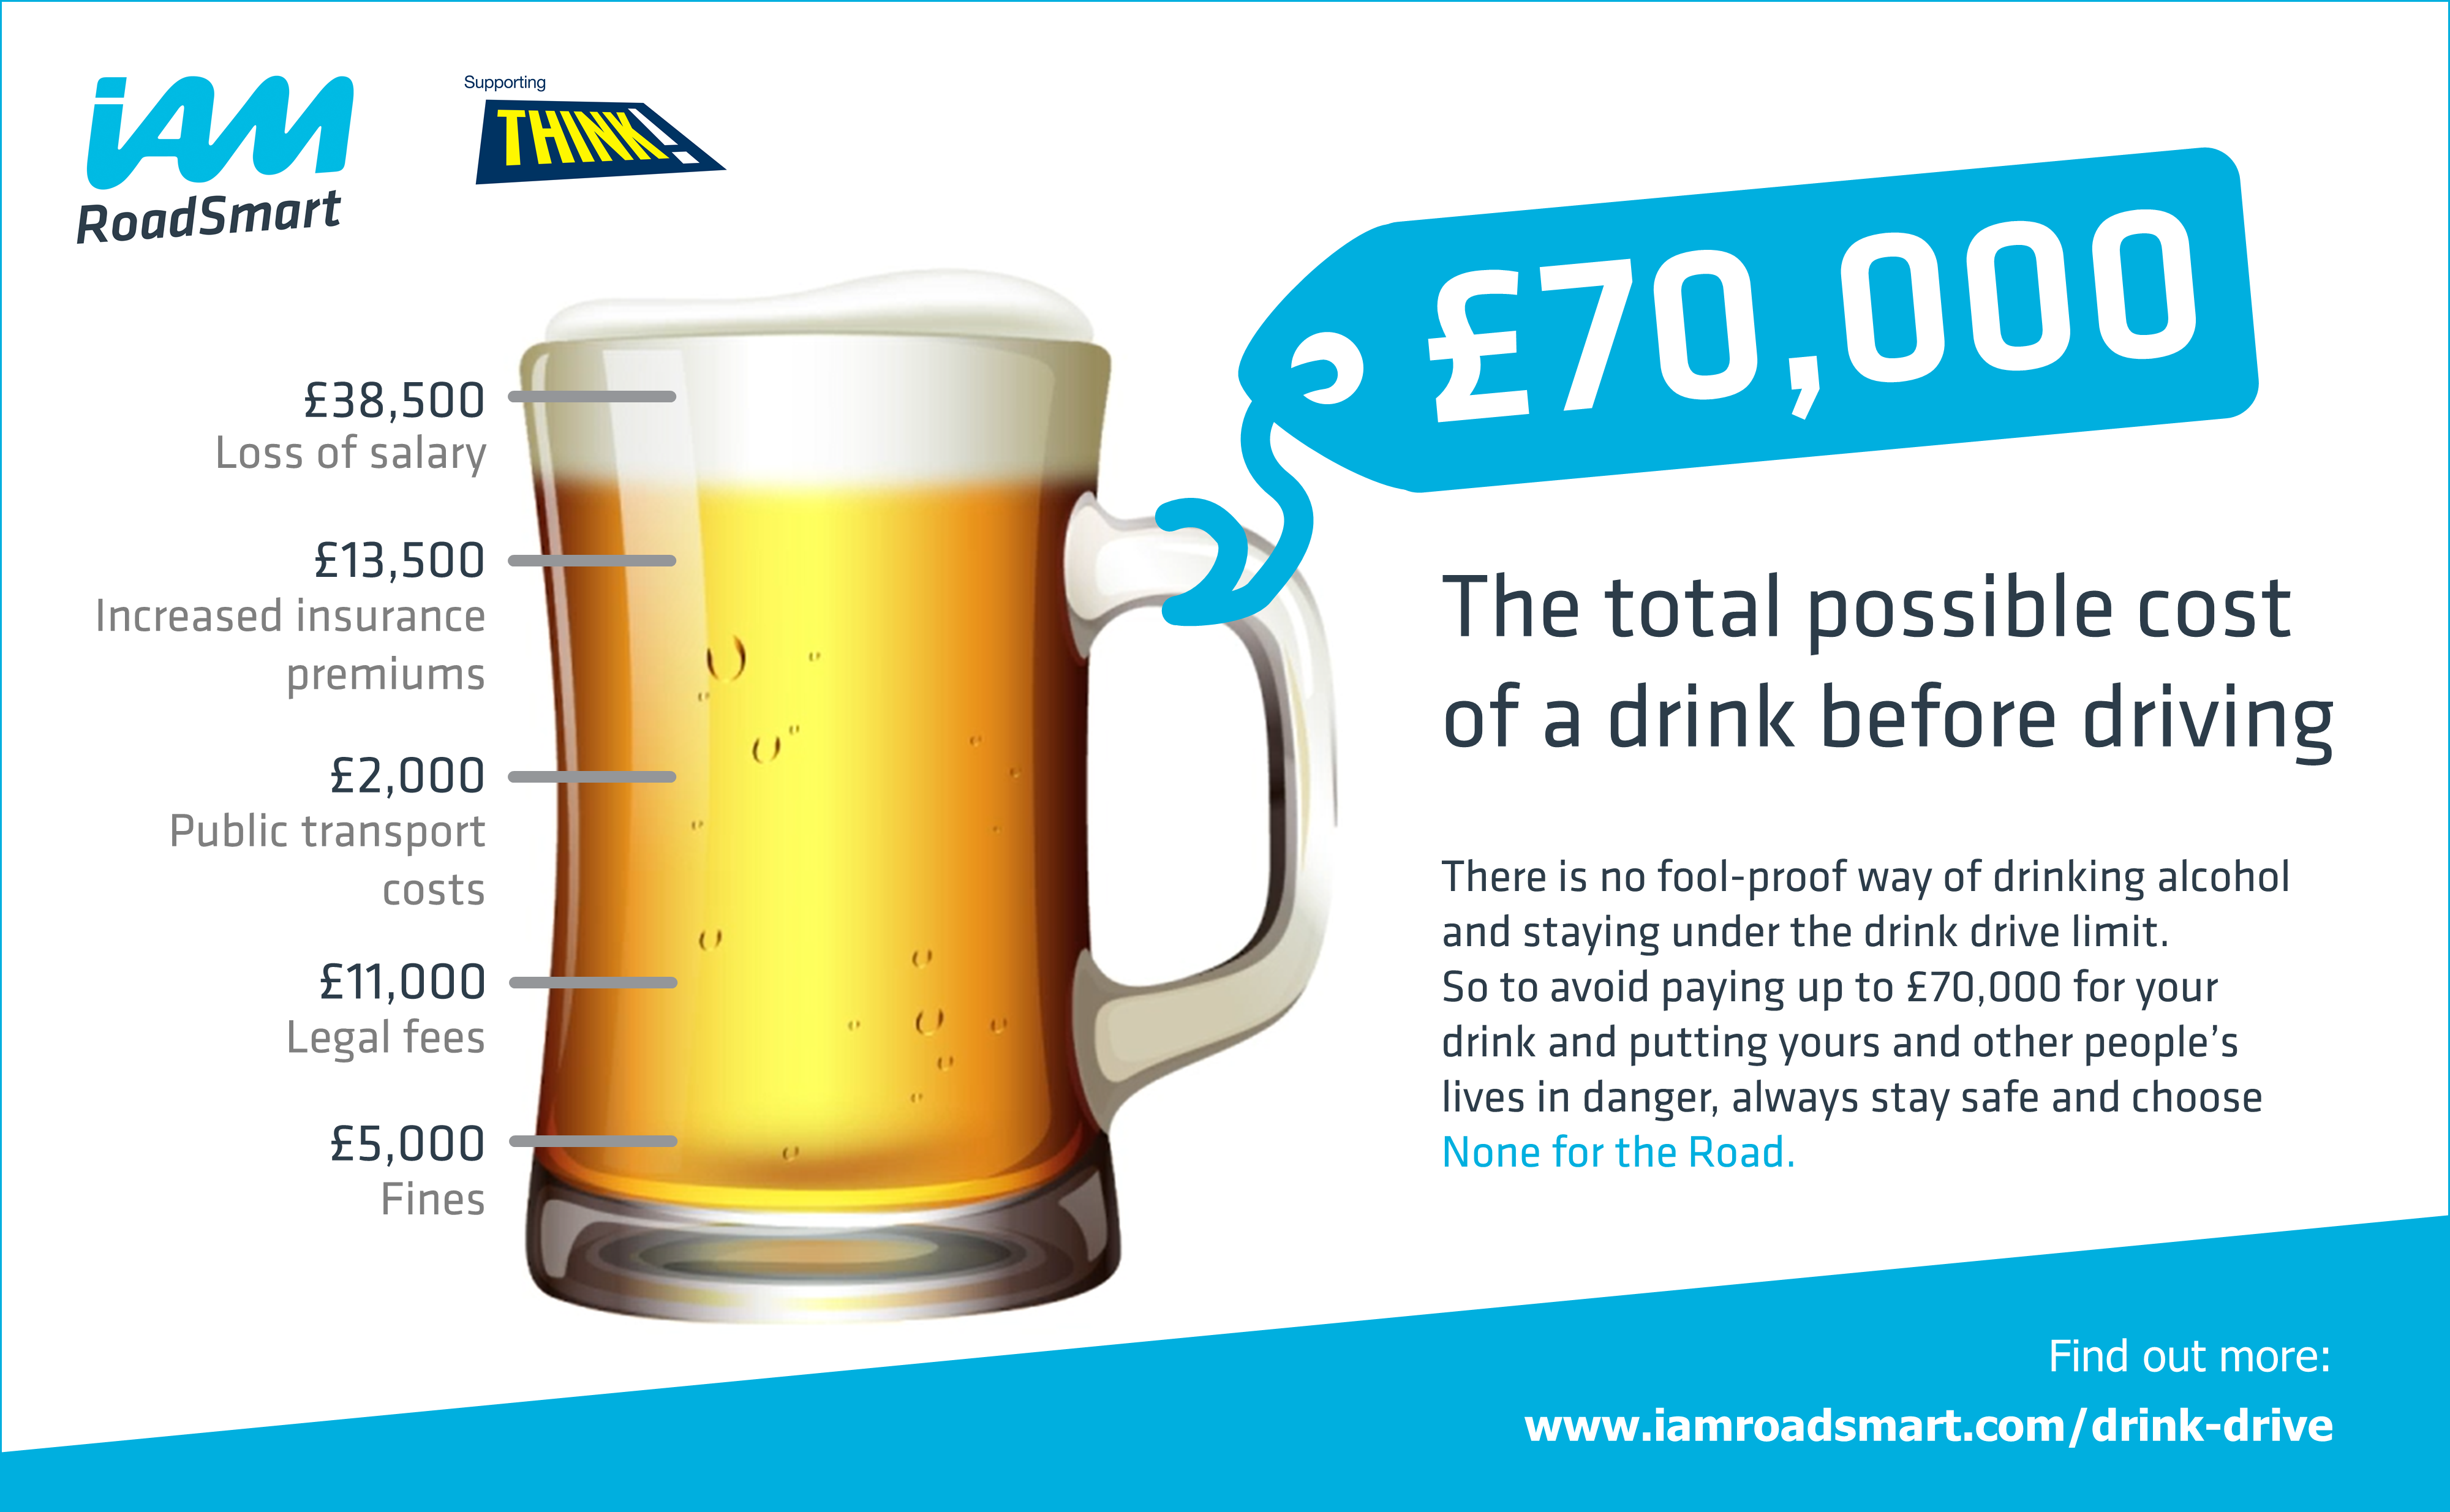 Drink-drive infographic image